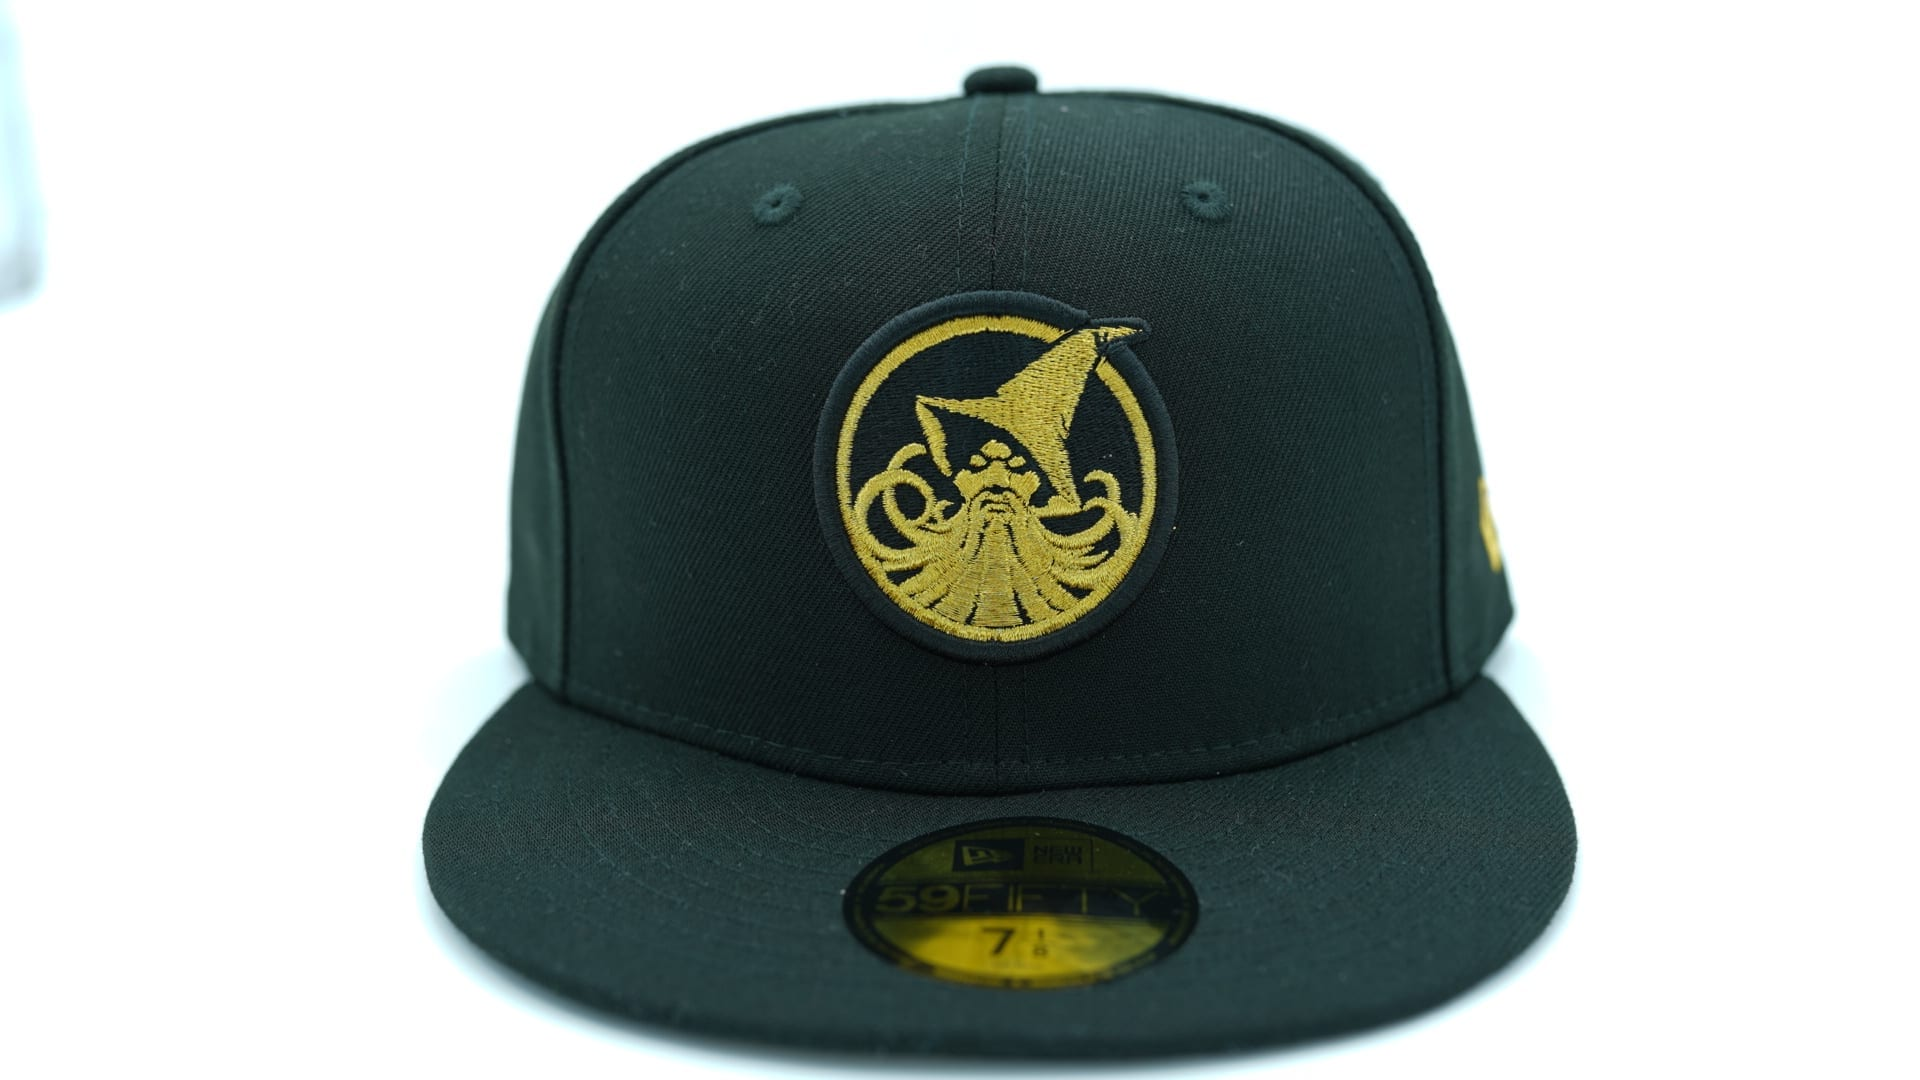 Portland Sea Dogs Sluggers Face Sunday 59Fifty Fitted Cap by NEW ERA x MiLB